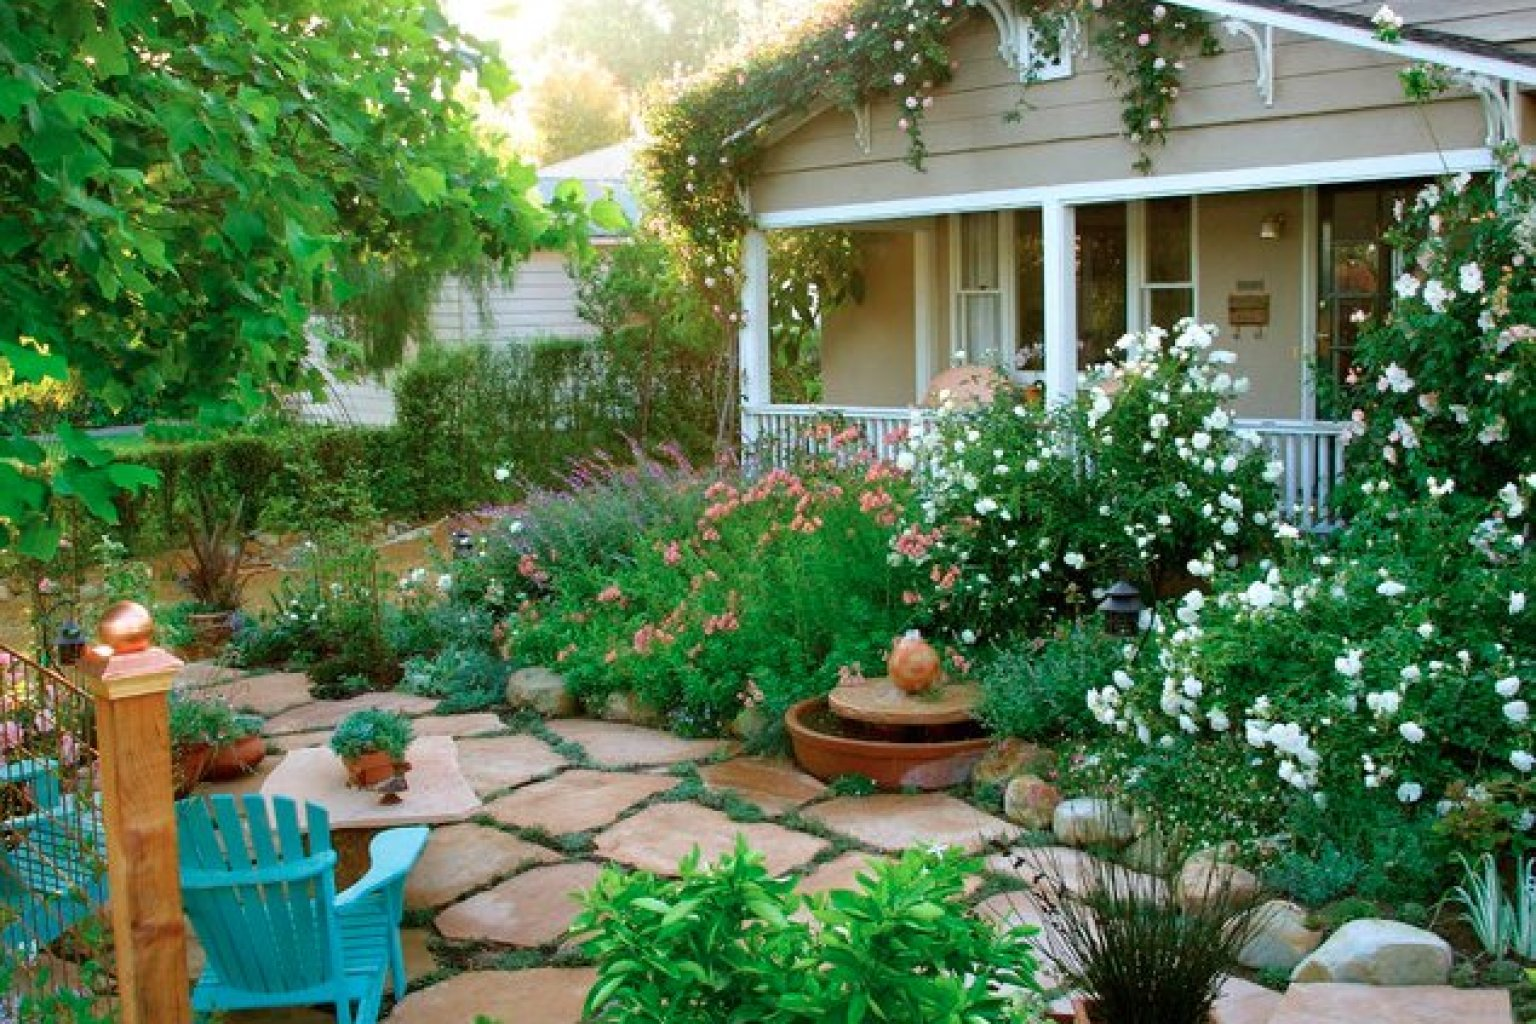 10 cottage gardens that are just too charming for words photos huffpost - Garden Design Cottage Style